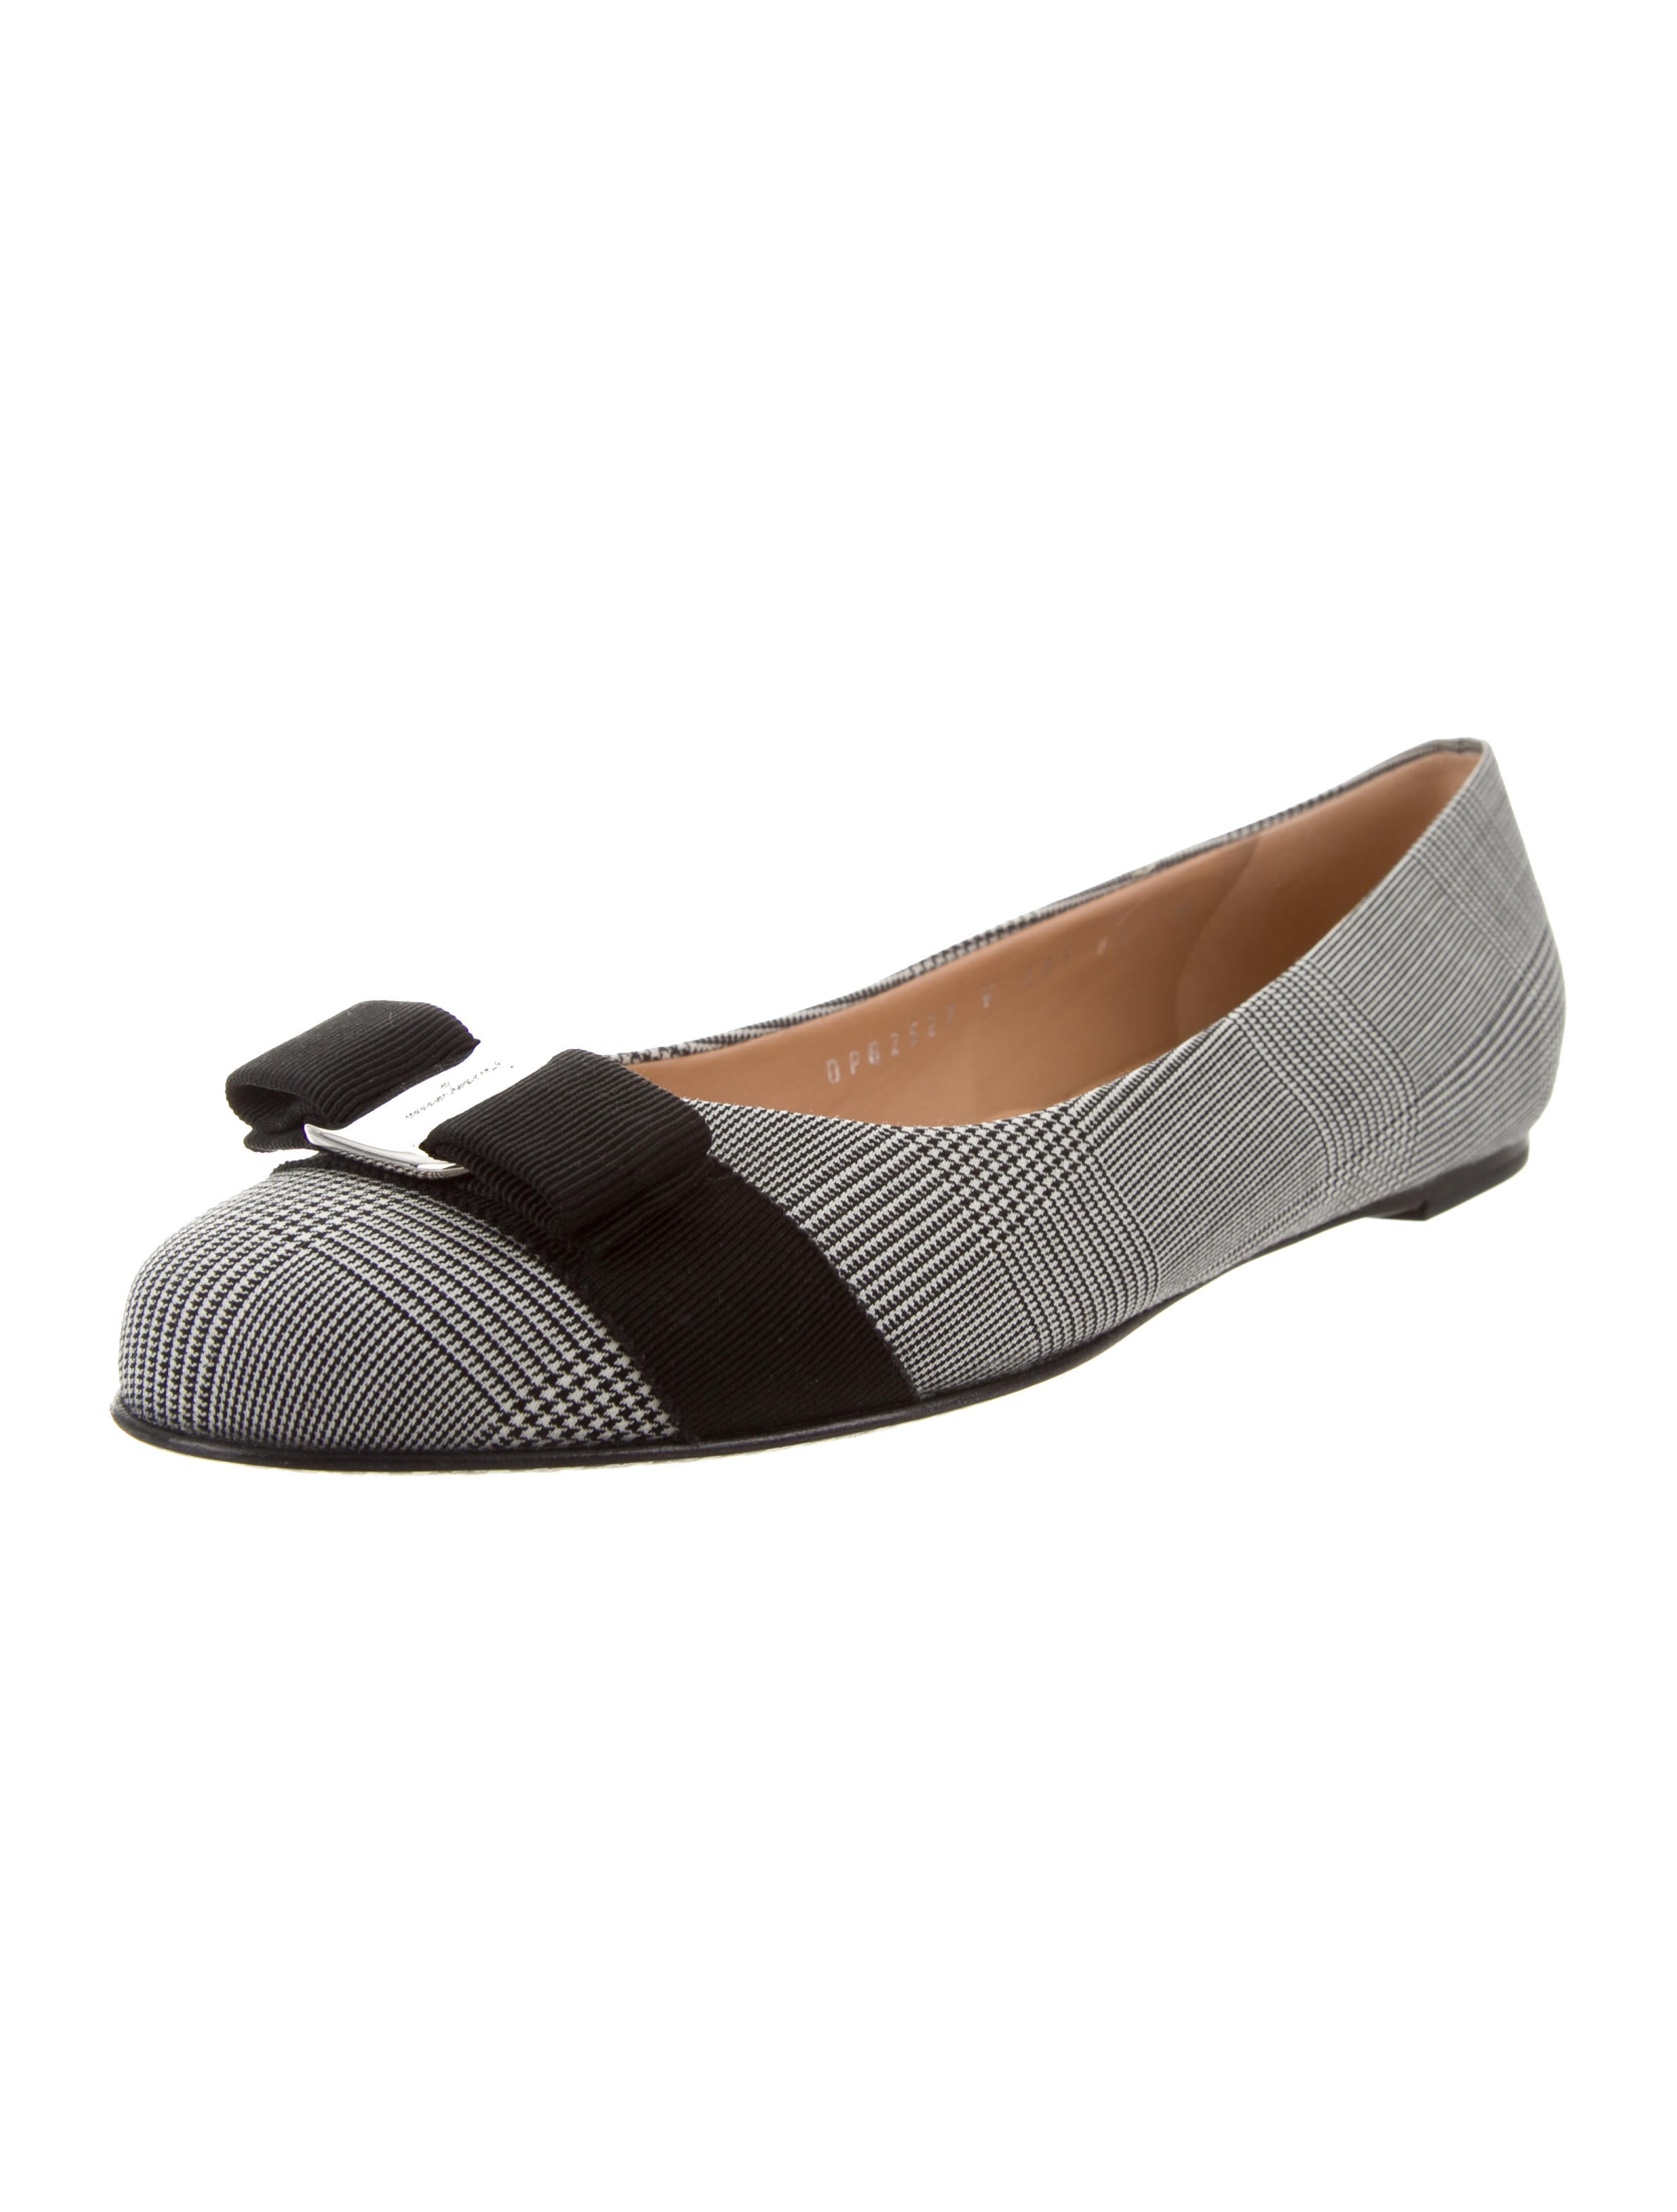 Salvatore Ferragamo Glen Plaid Bow Flats for sale free shipping Is2rzgL4